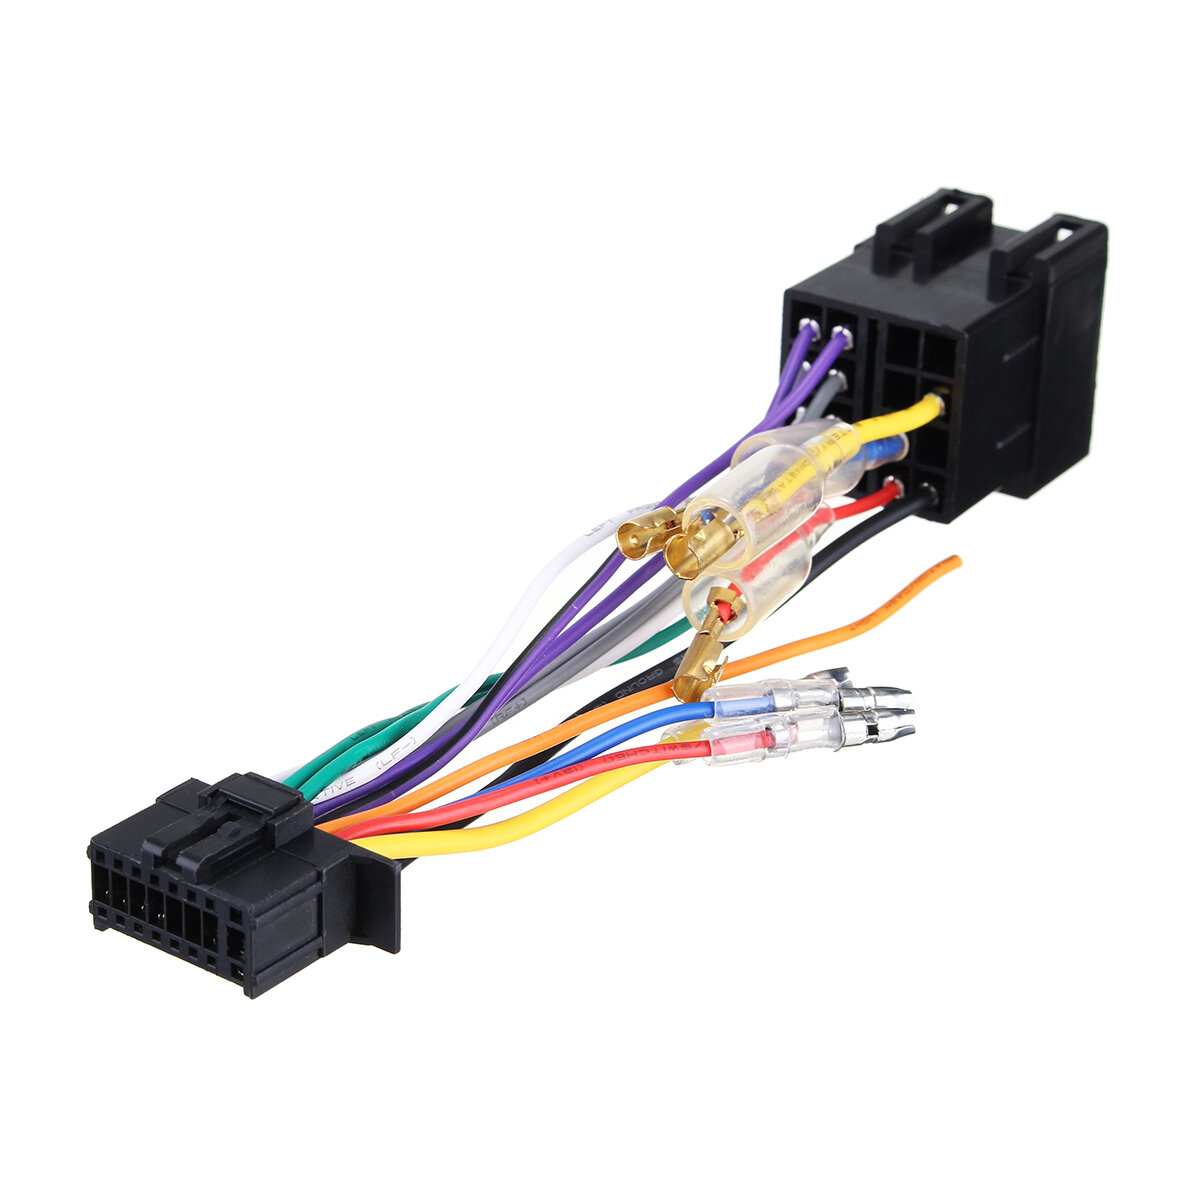 hight resolution of 16pin car stereo radio wiring harness connector plug iso pi100 for car stereo 16 pin wire harness further pioneer car stereo wiring